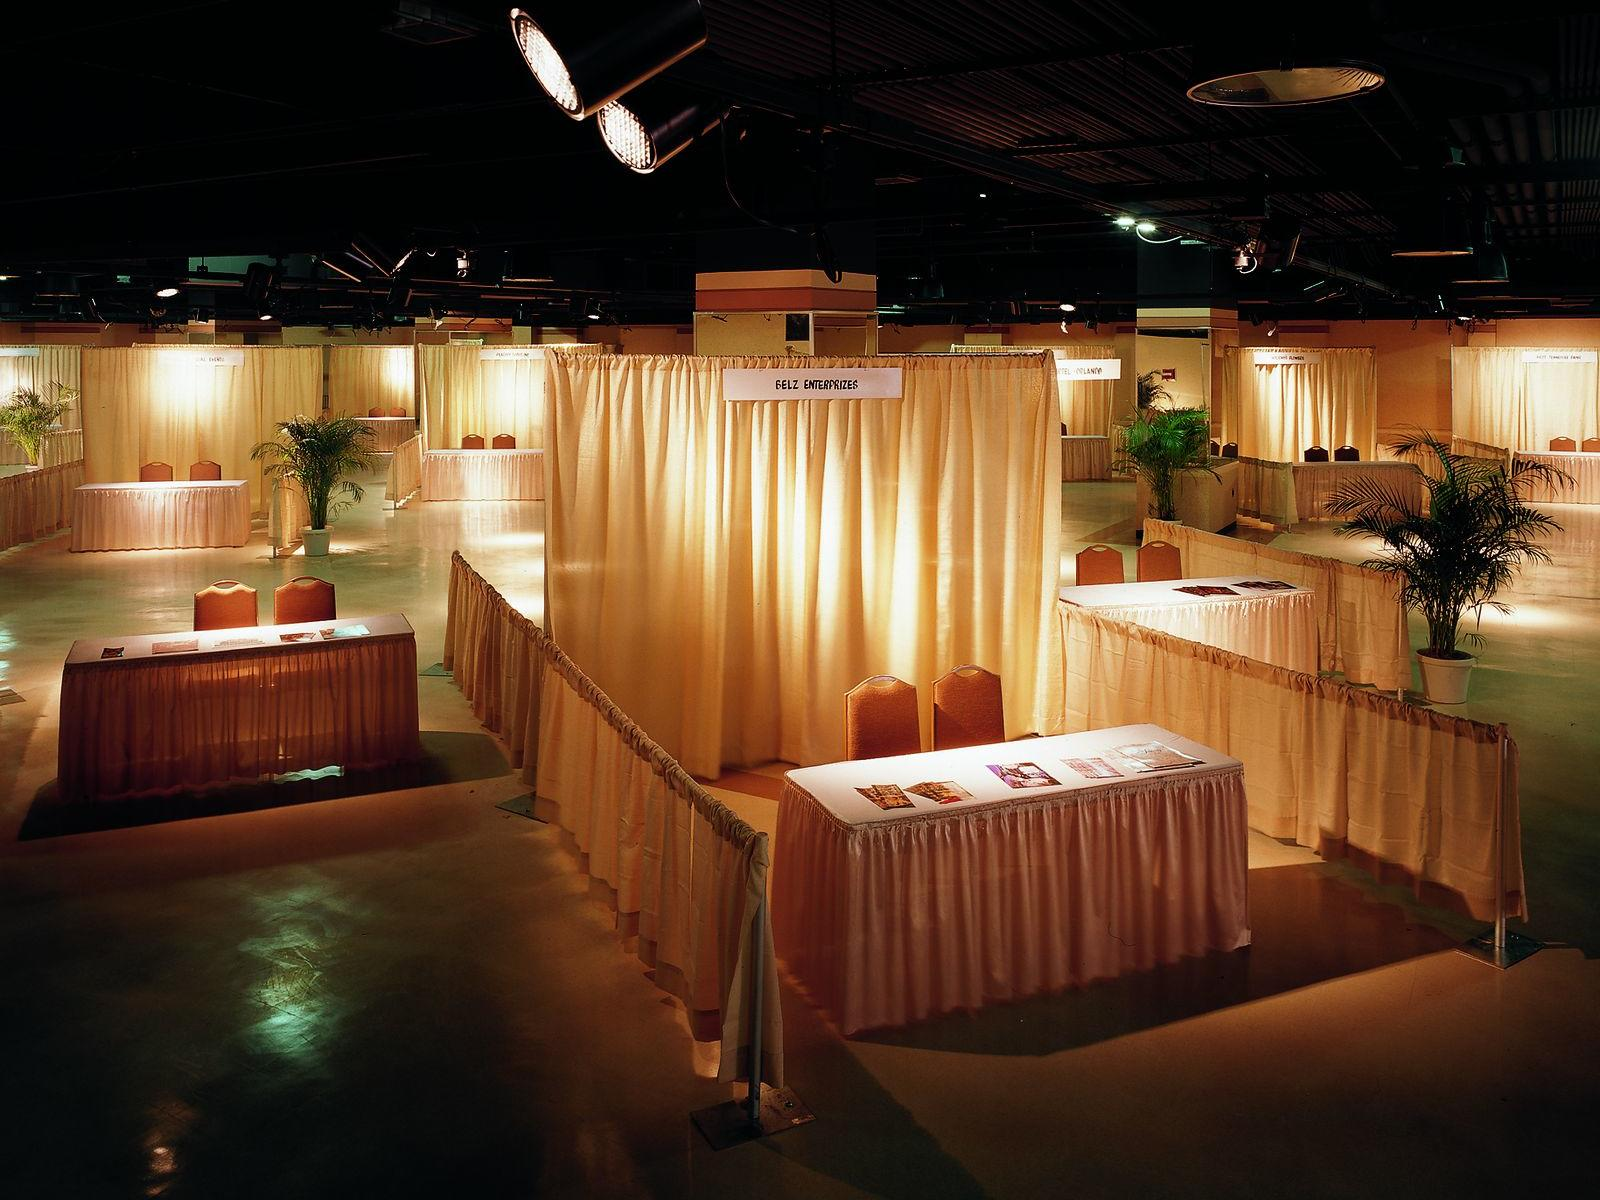 Tennessee Exhibit Hall set for expo